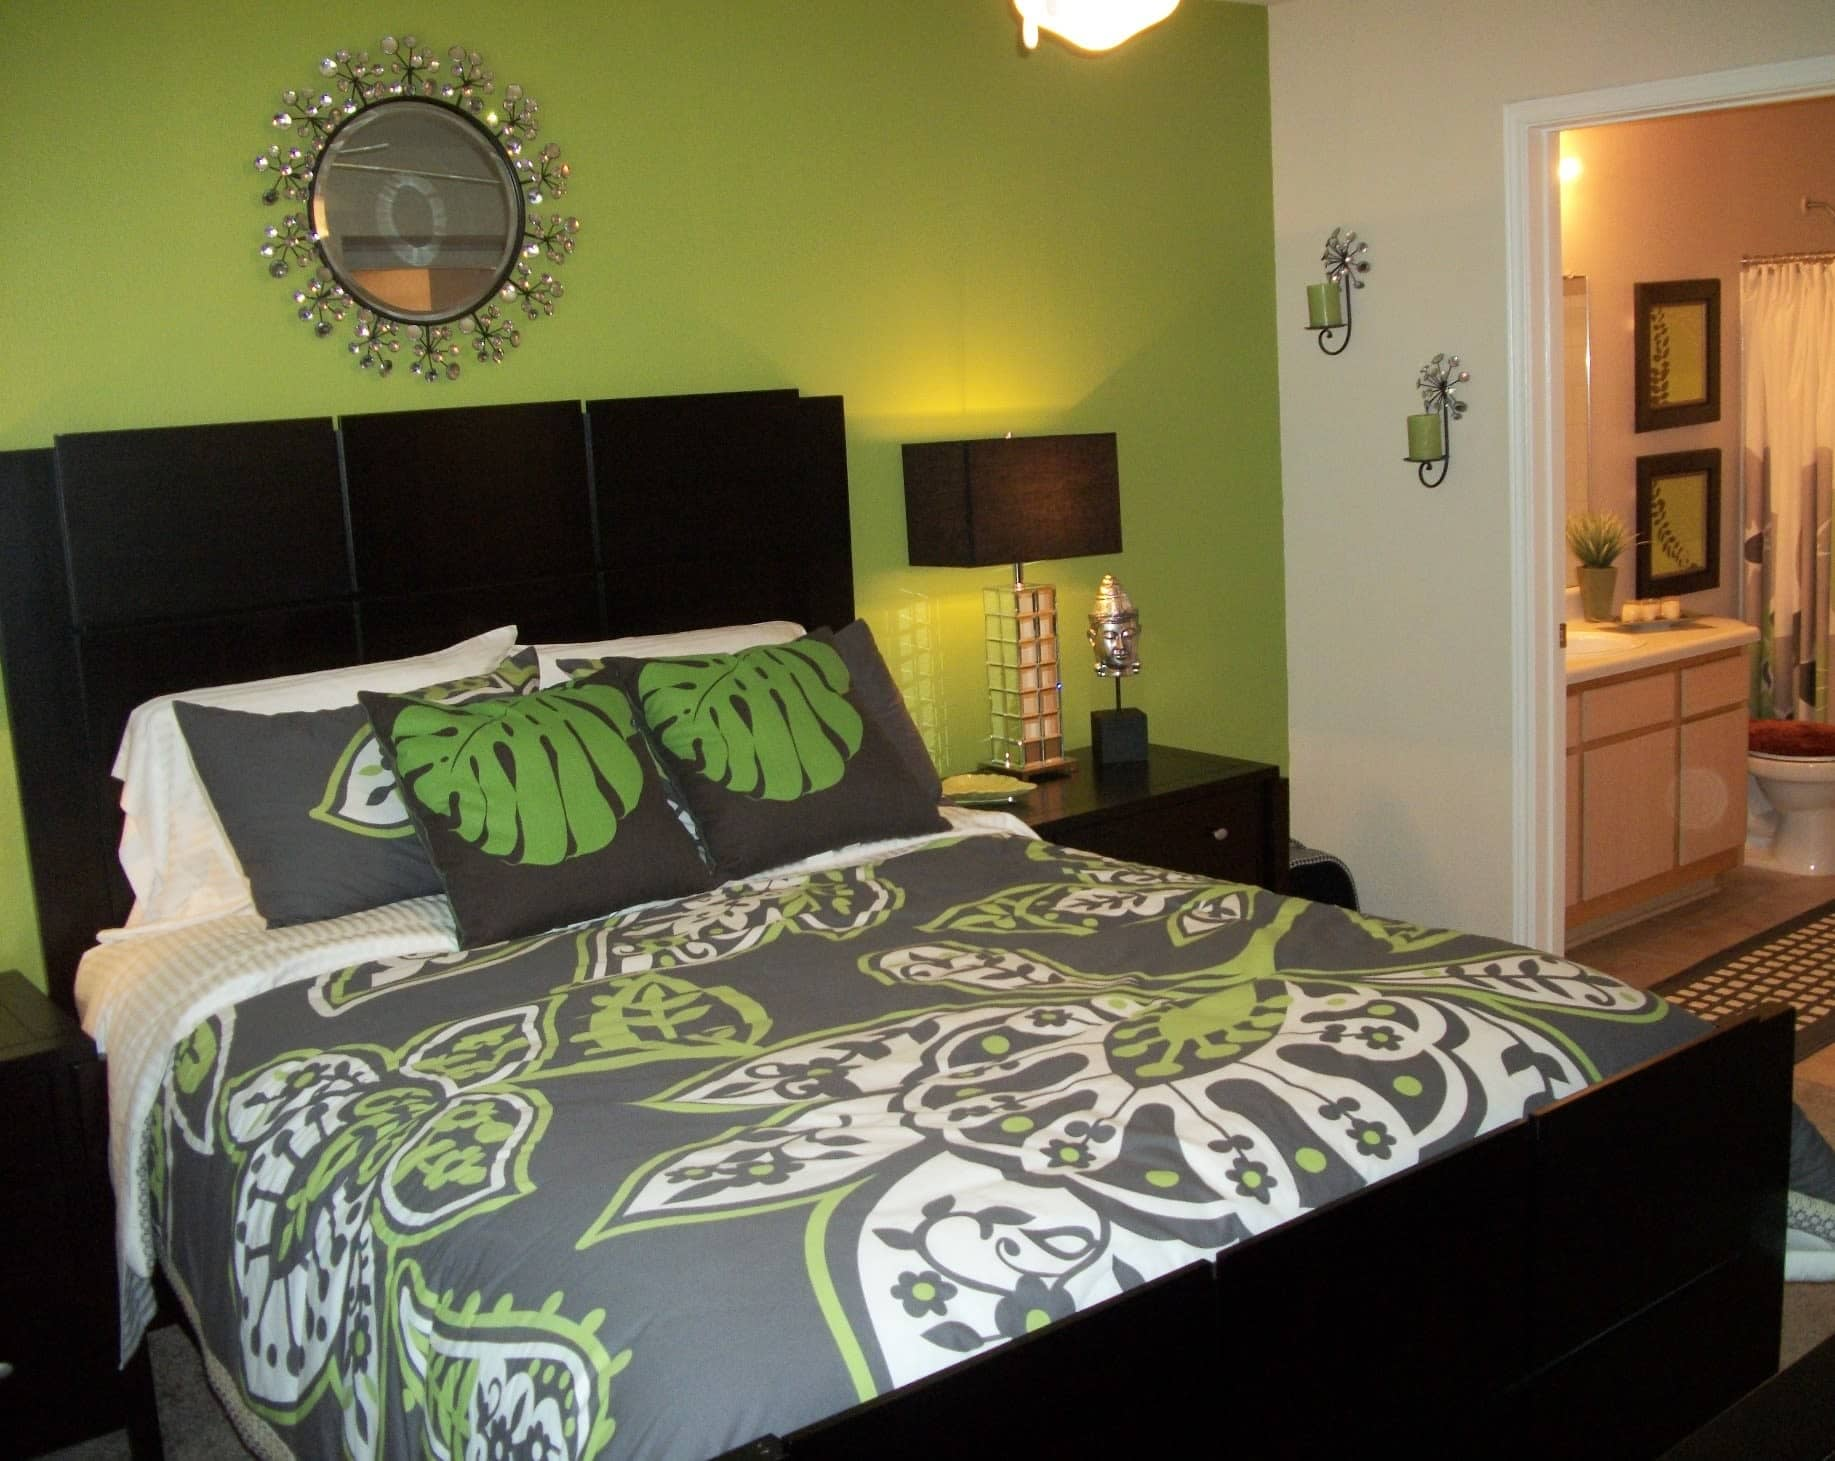 Luxury 1 2 3 Bedroom Apartments In North Richland Hills Tx